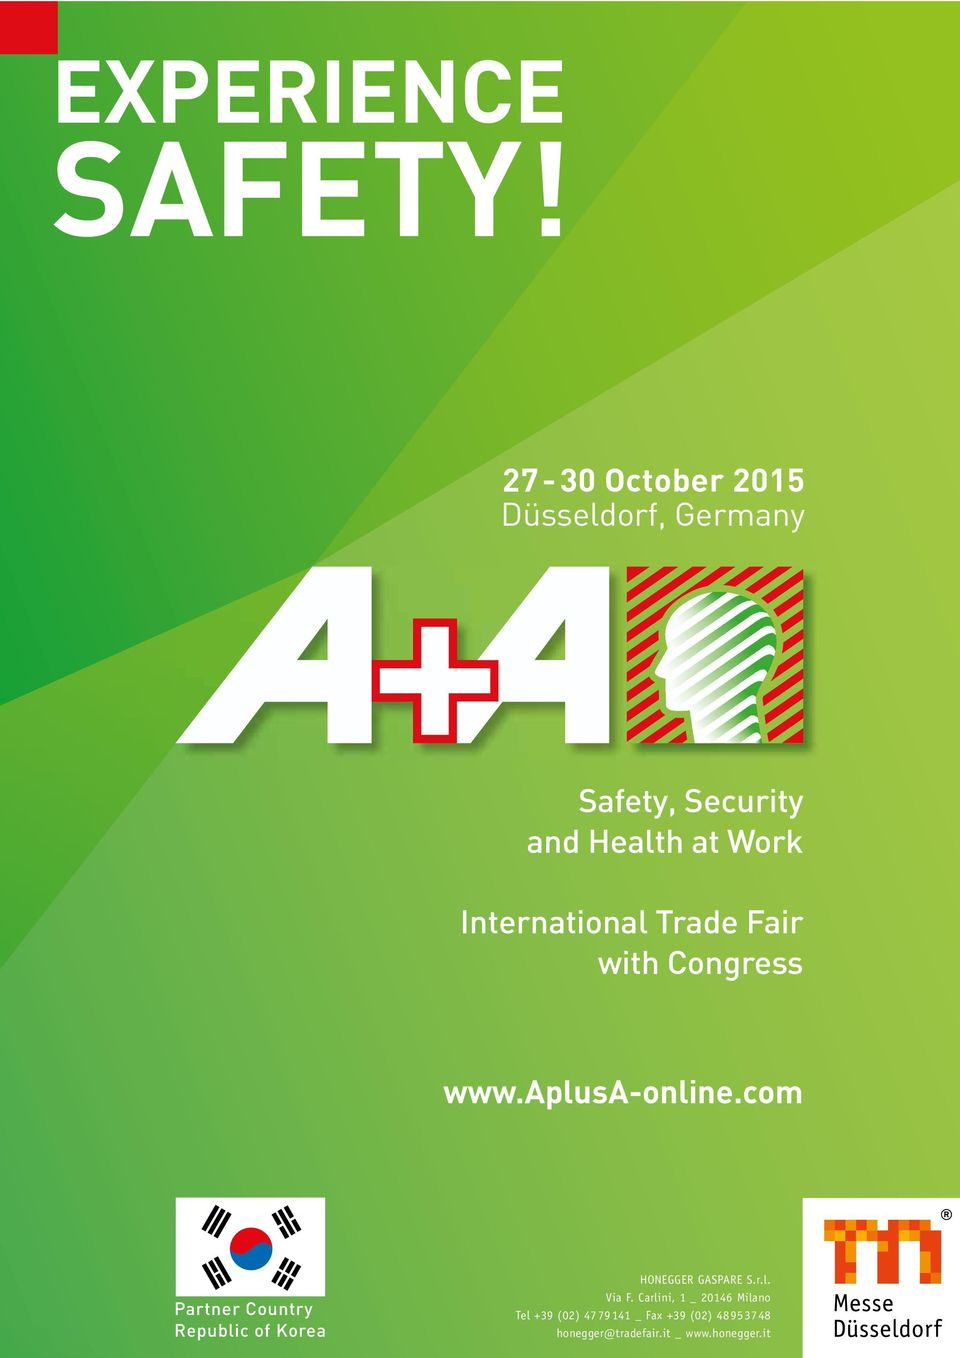 International Trade Fair with Congress www.aplusa-online.